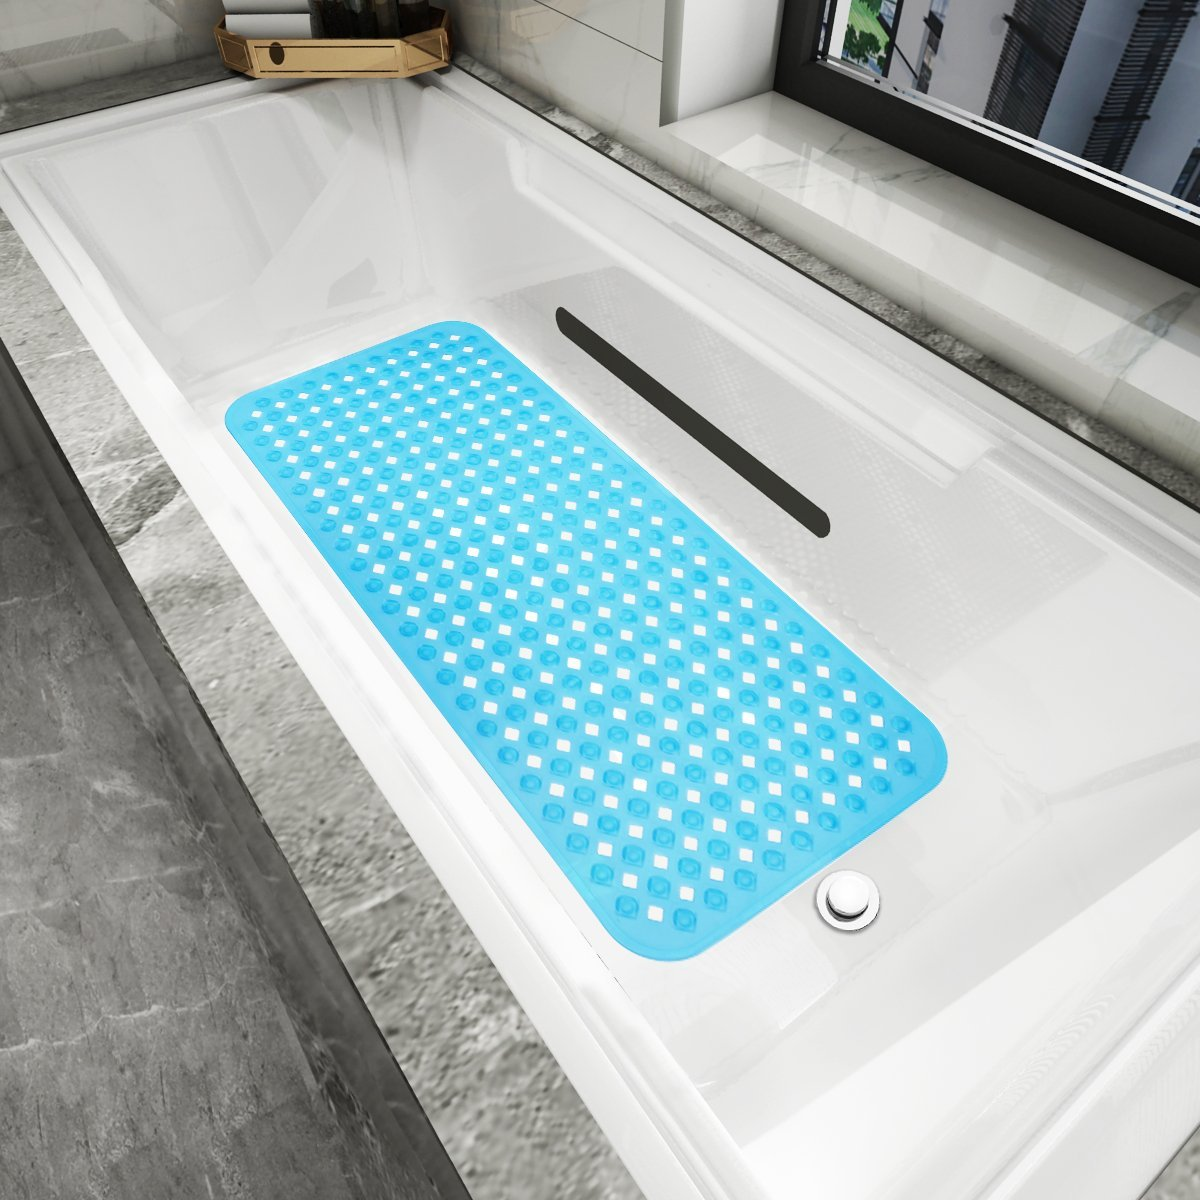 Yimobra Patented Design Bath Tub and Shower Mat Extra Long 34.5 x 15.5 Inch Anti Bacterial Phthalate Free Latex and Machine Washable Materials Black